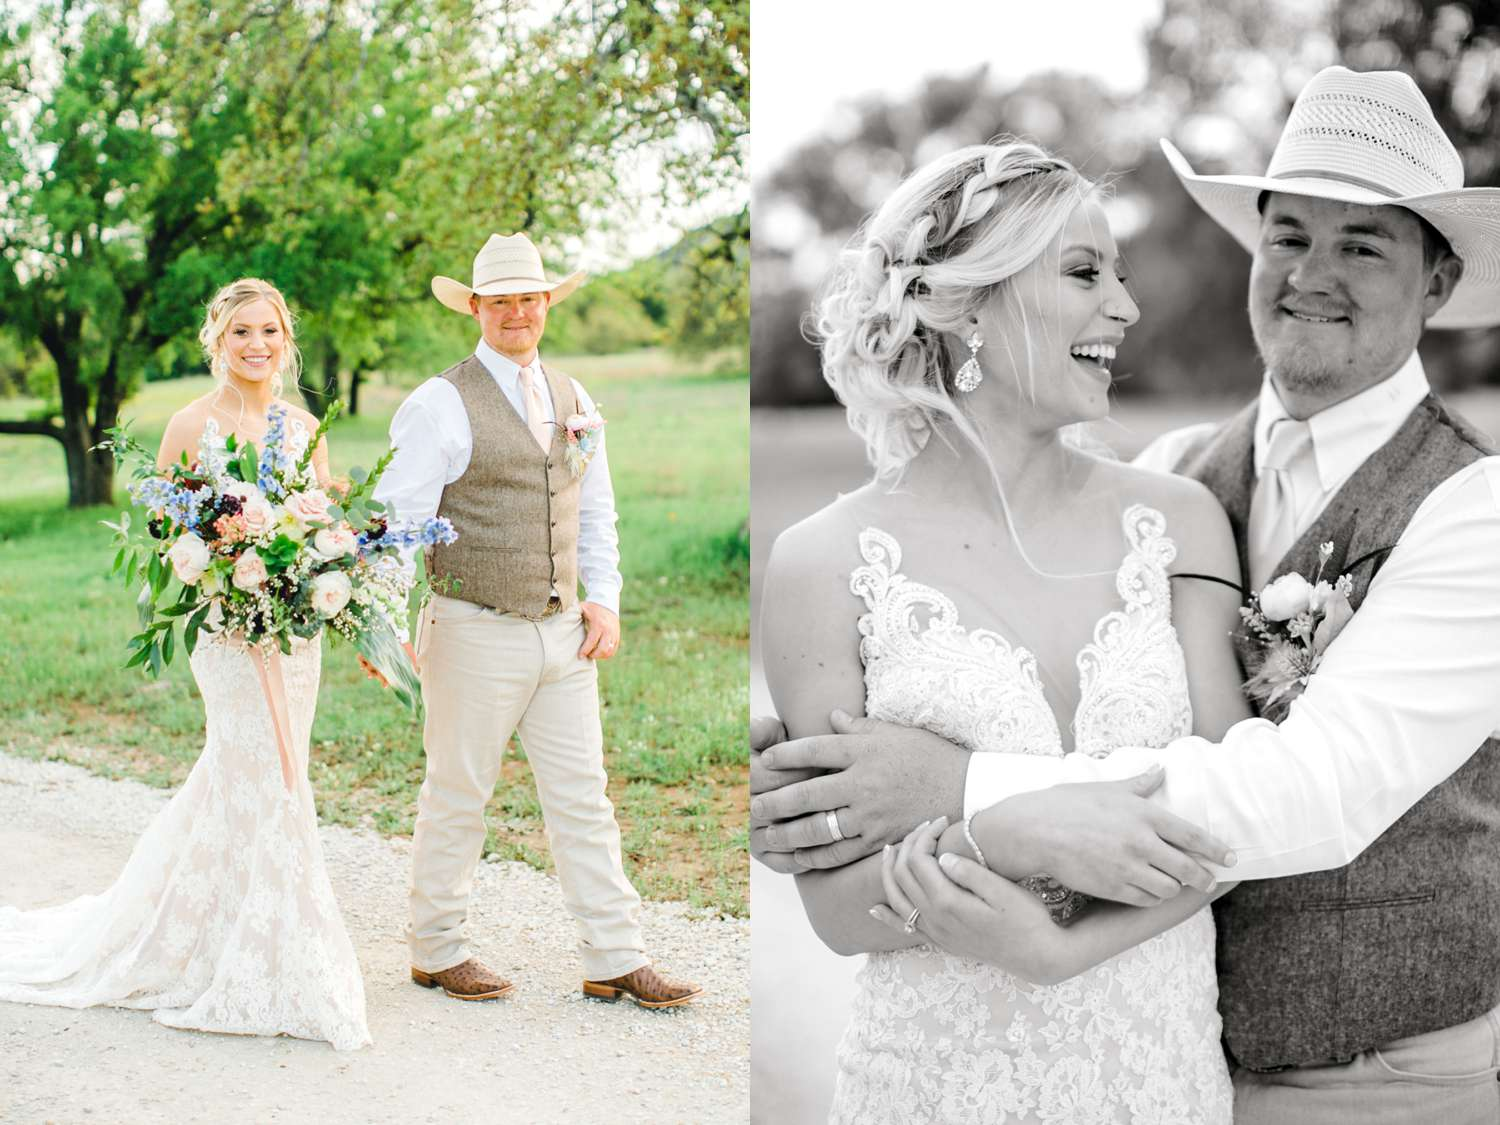 SARAH+TREVOR+BADGETT+SPARROW+CREEK+GRAHAM+TEXAS+ALLEEJ+WEDDINGS_0110.jpg